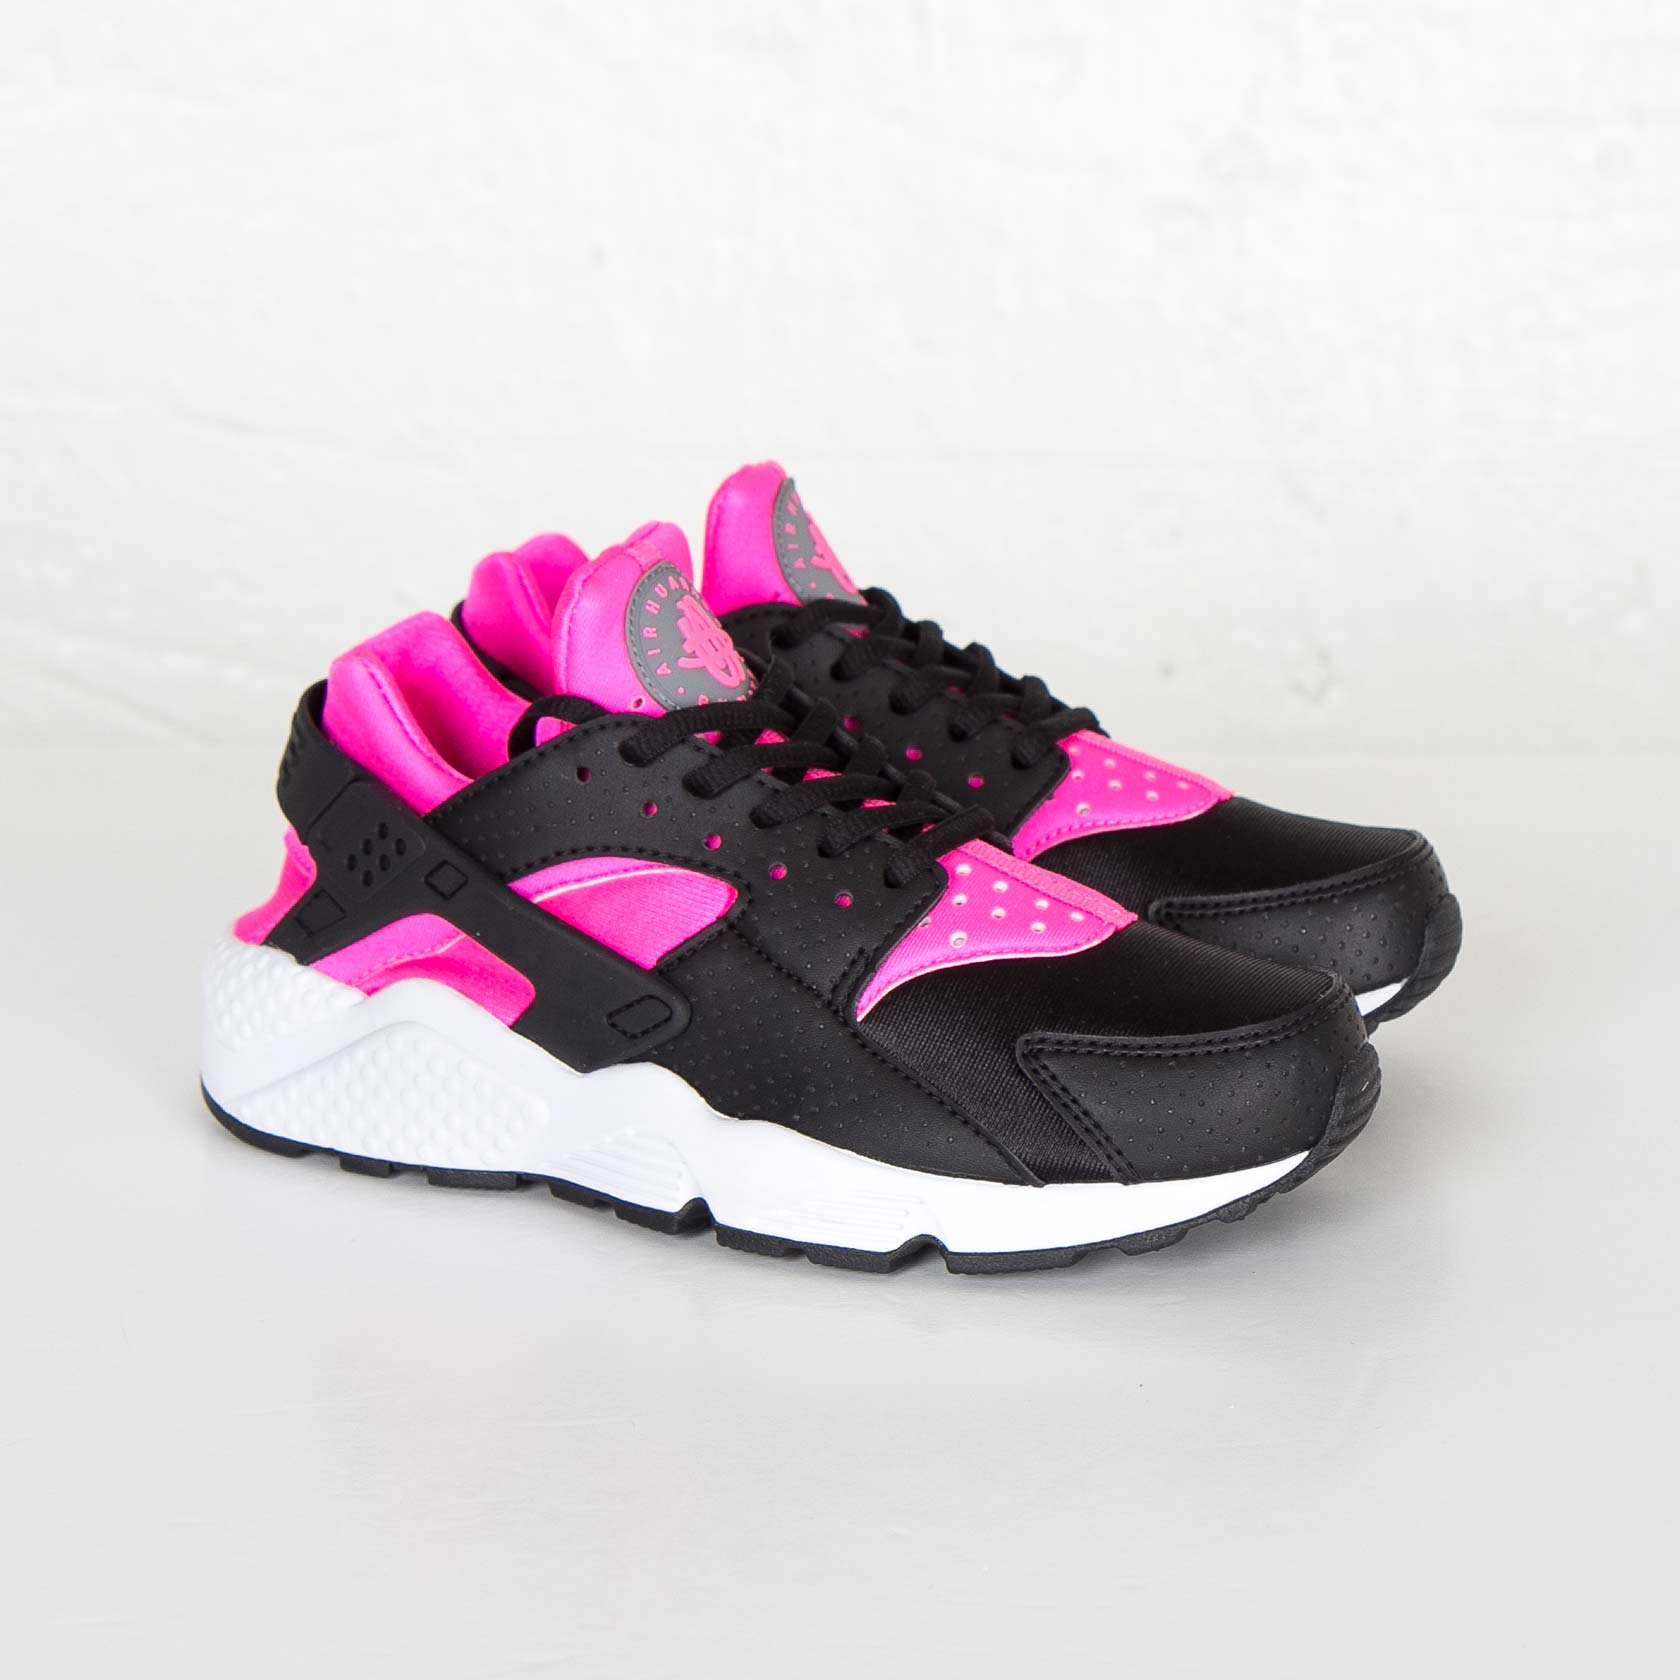 08538c27be935 Nike Wmns Air Huarache Run - 634835-604 - Sneakersnstuff